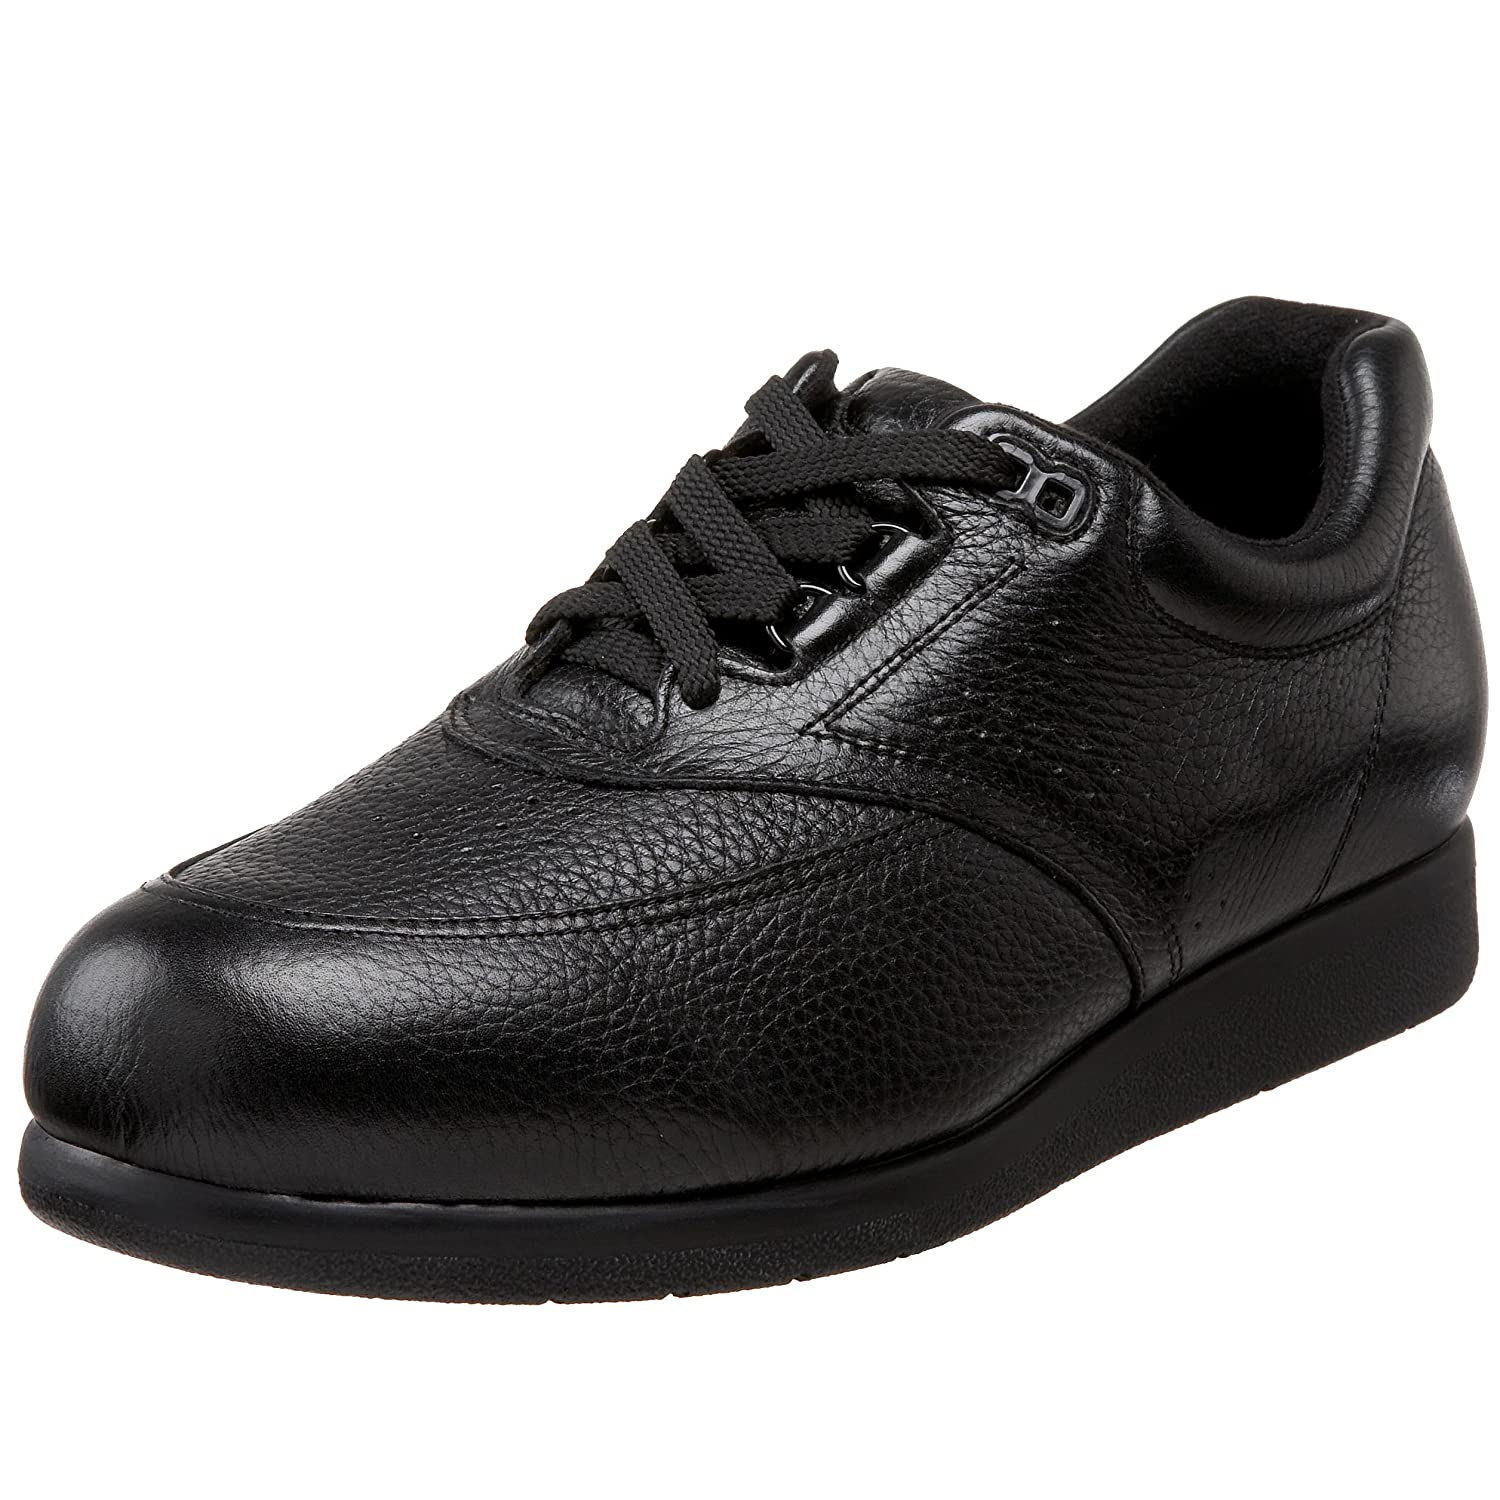 Drew Shoe Men's Expedition Ii Therapeutic Oxford